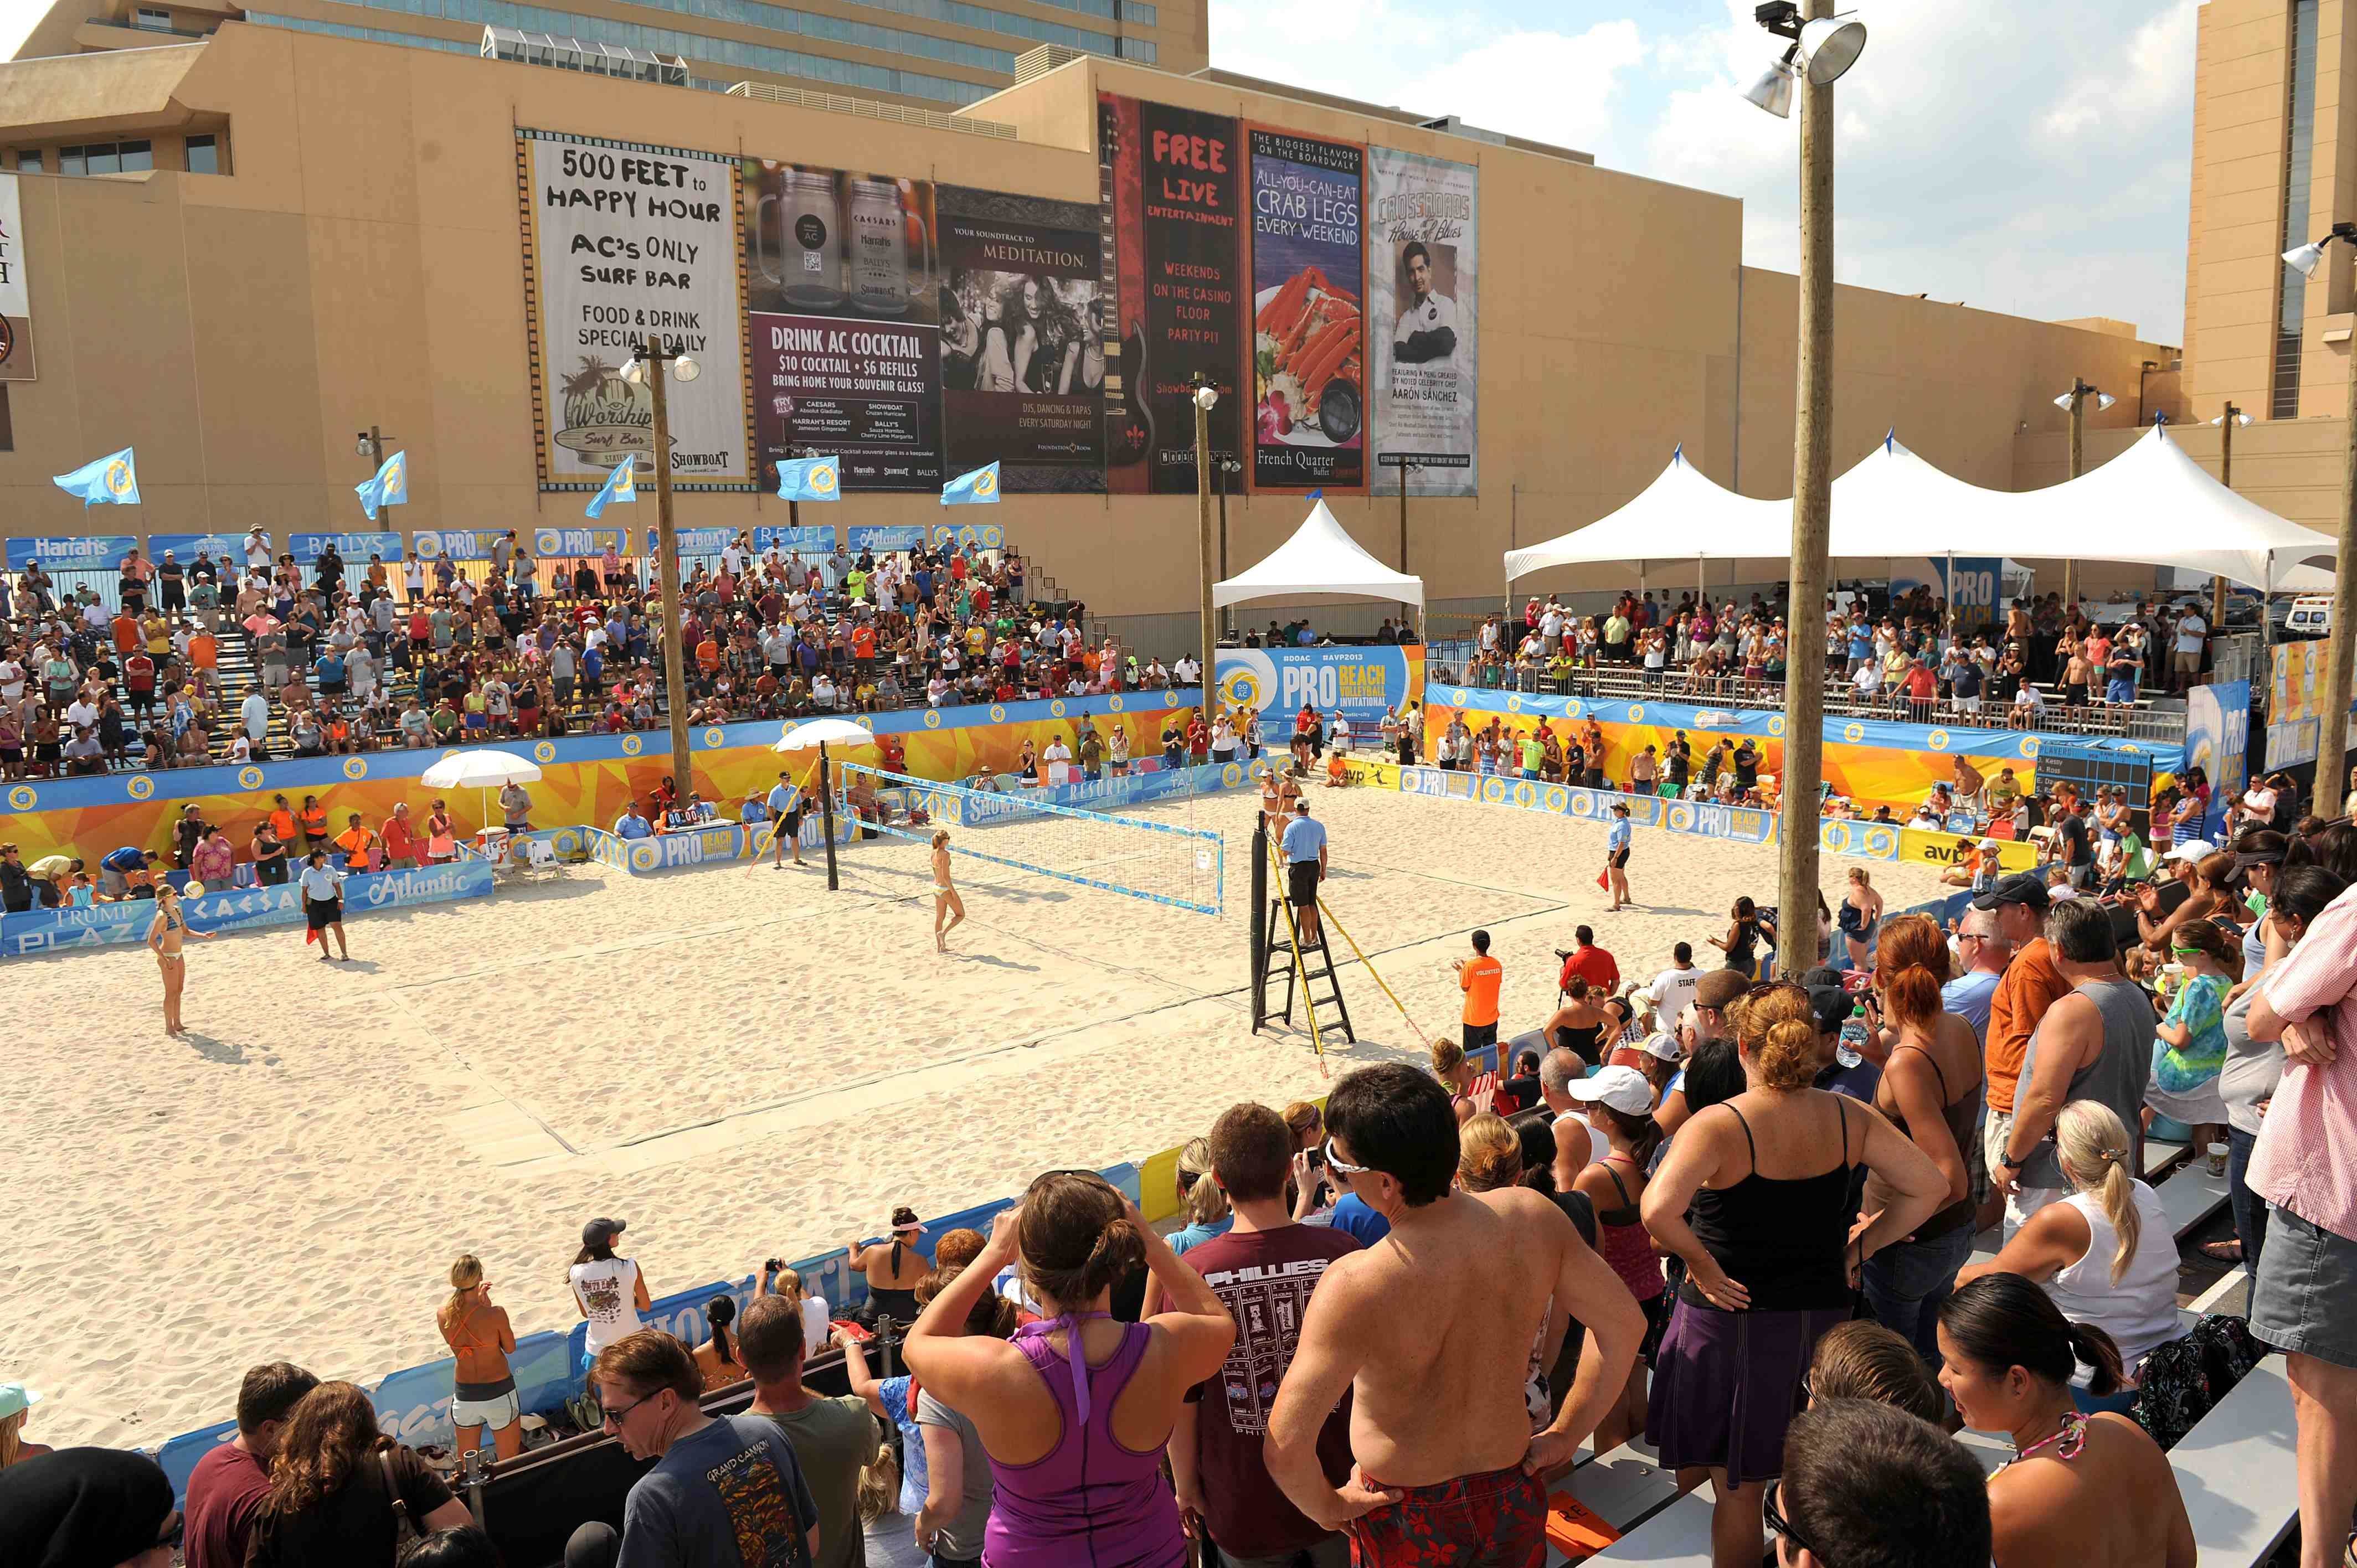 Volleyball Courts During Avp Tournament Beach Volleyball Volleyball Tournaments Volleyball